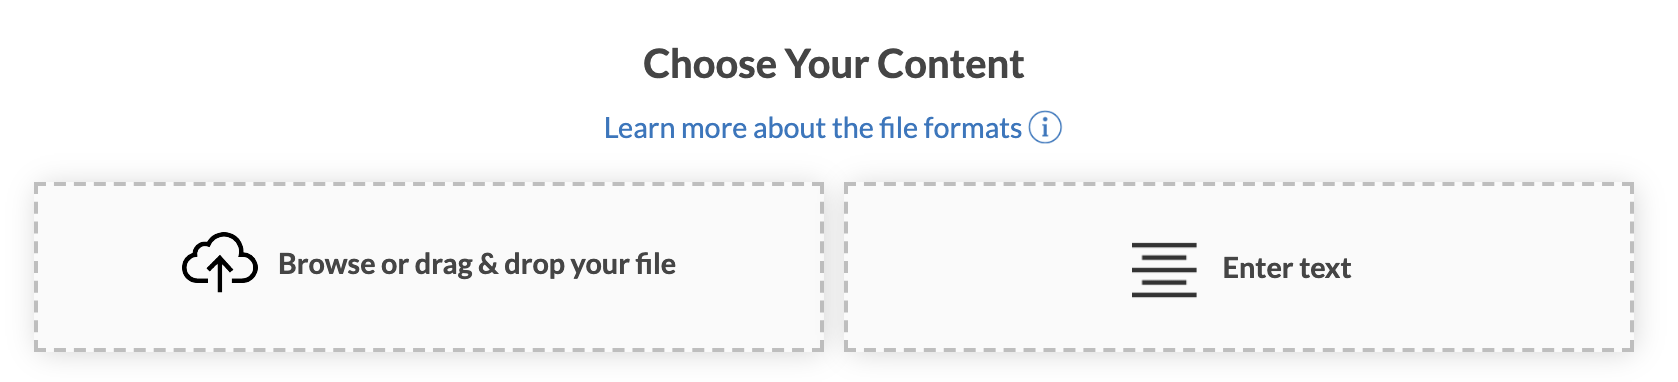 Upload A File For Proofreading And Editing